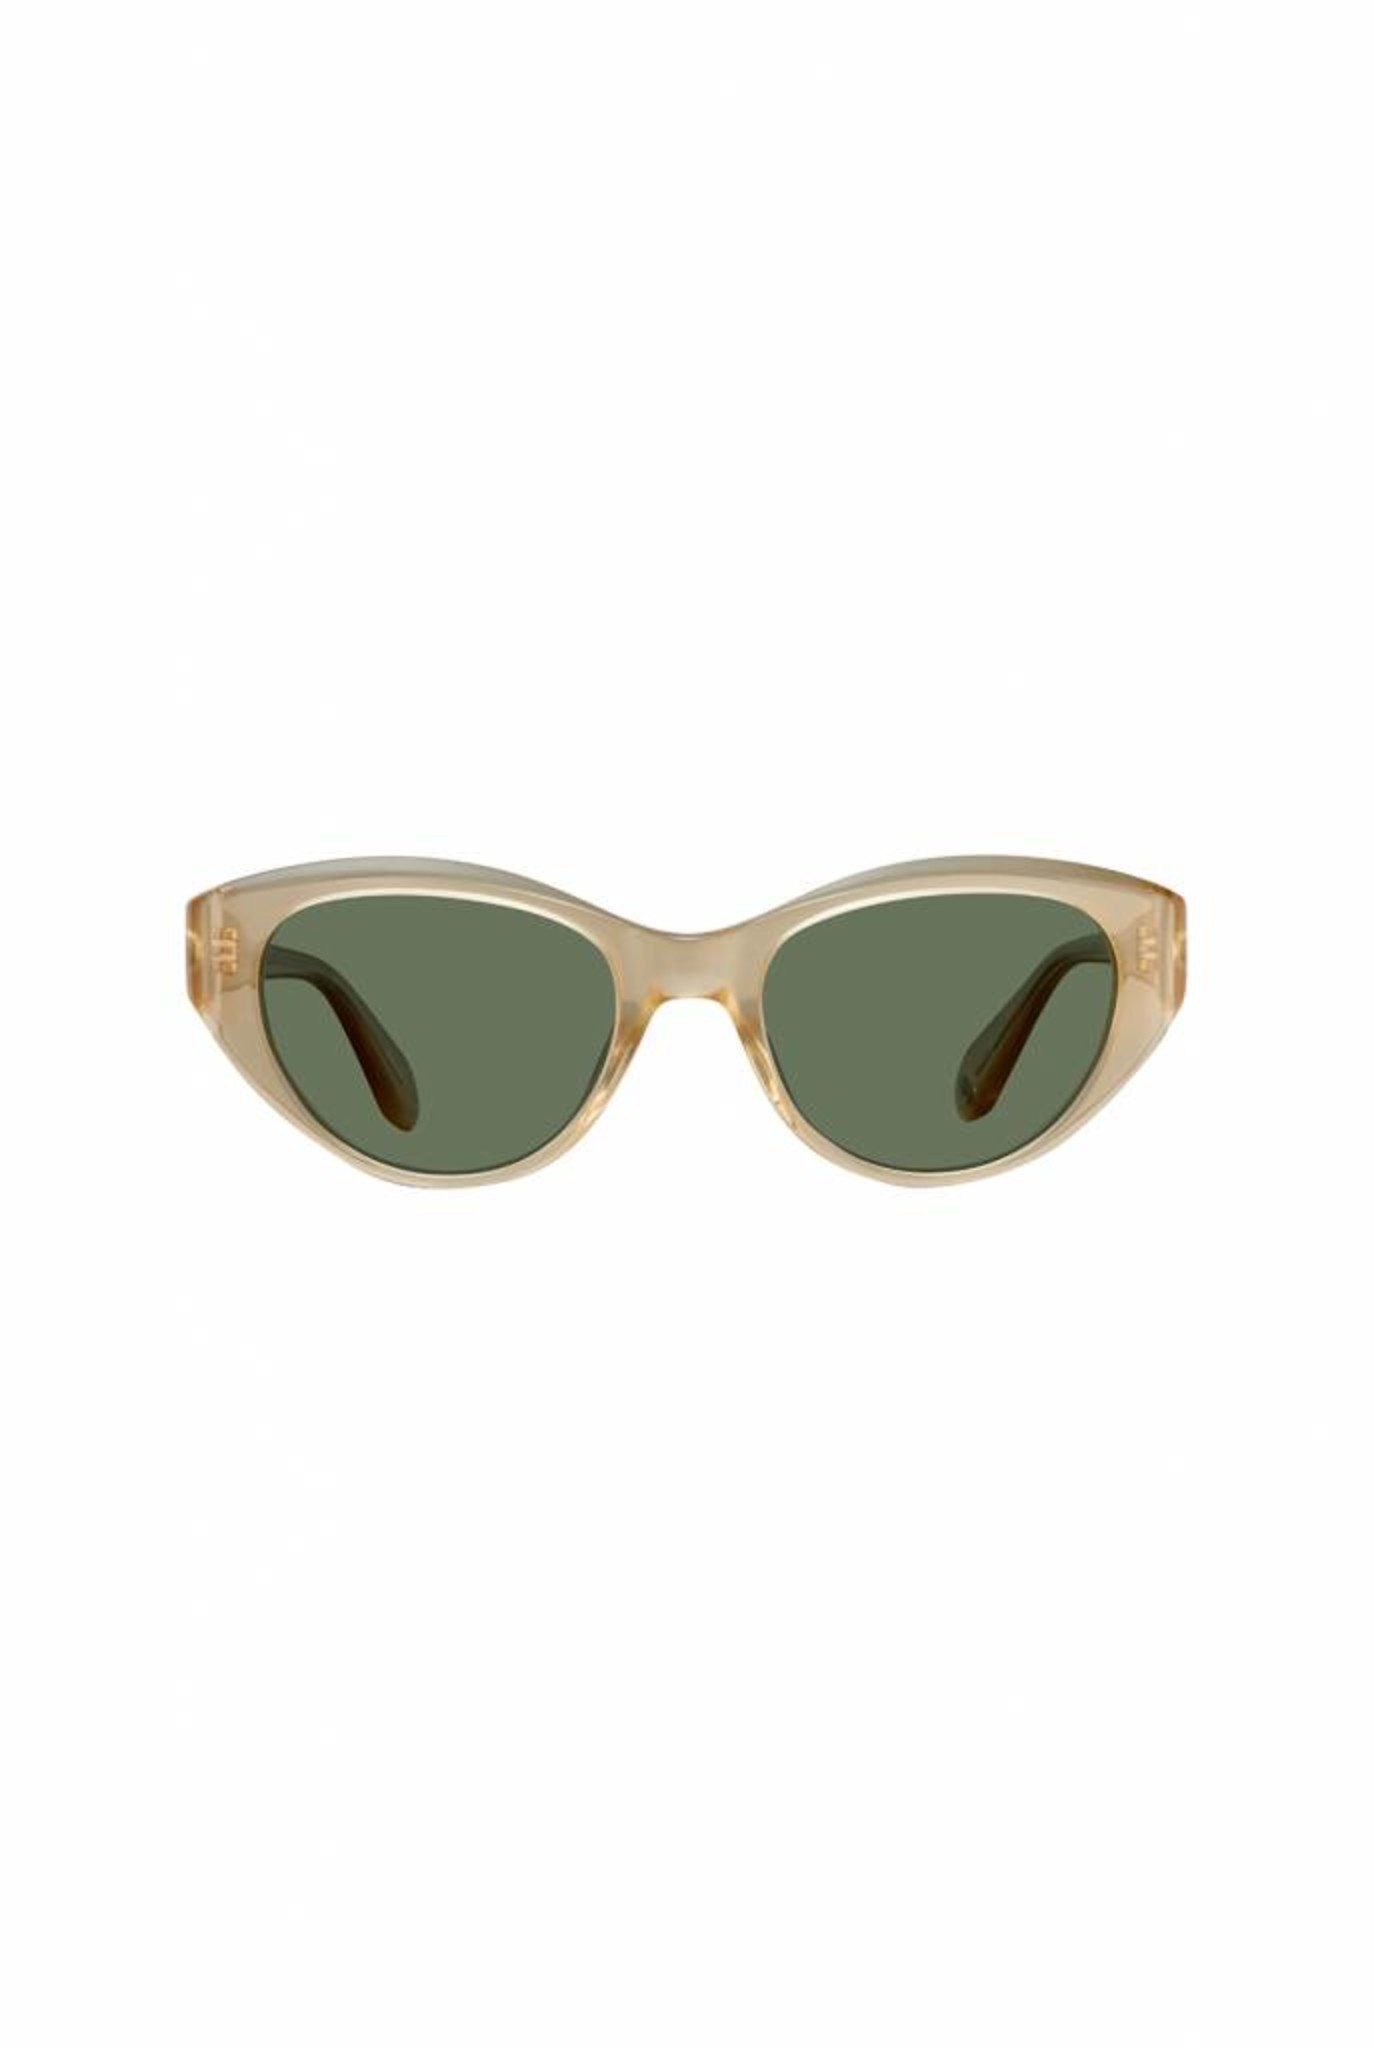 Del Rey sunglasses blonde green